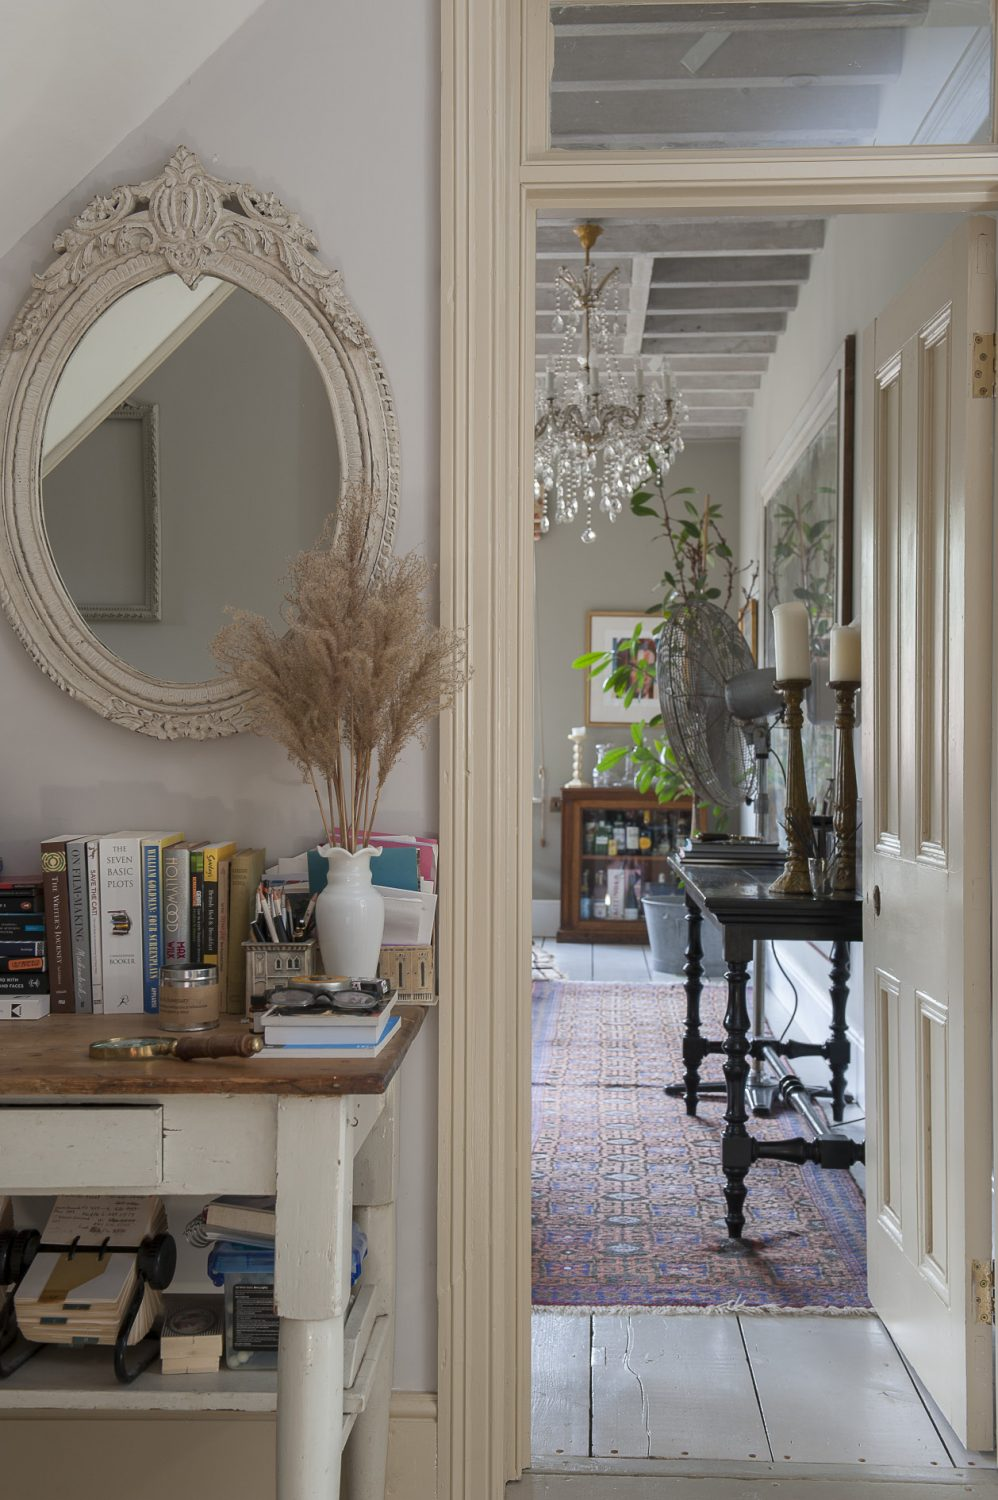 Vintage mirrors, carefully placed, are key to this light and bright home